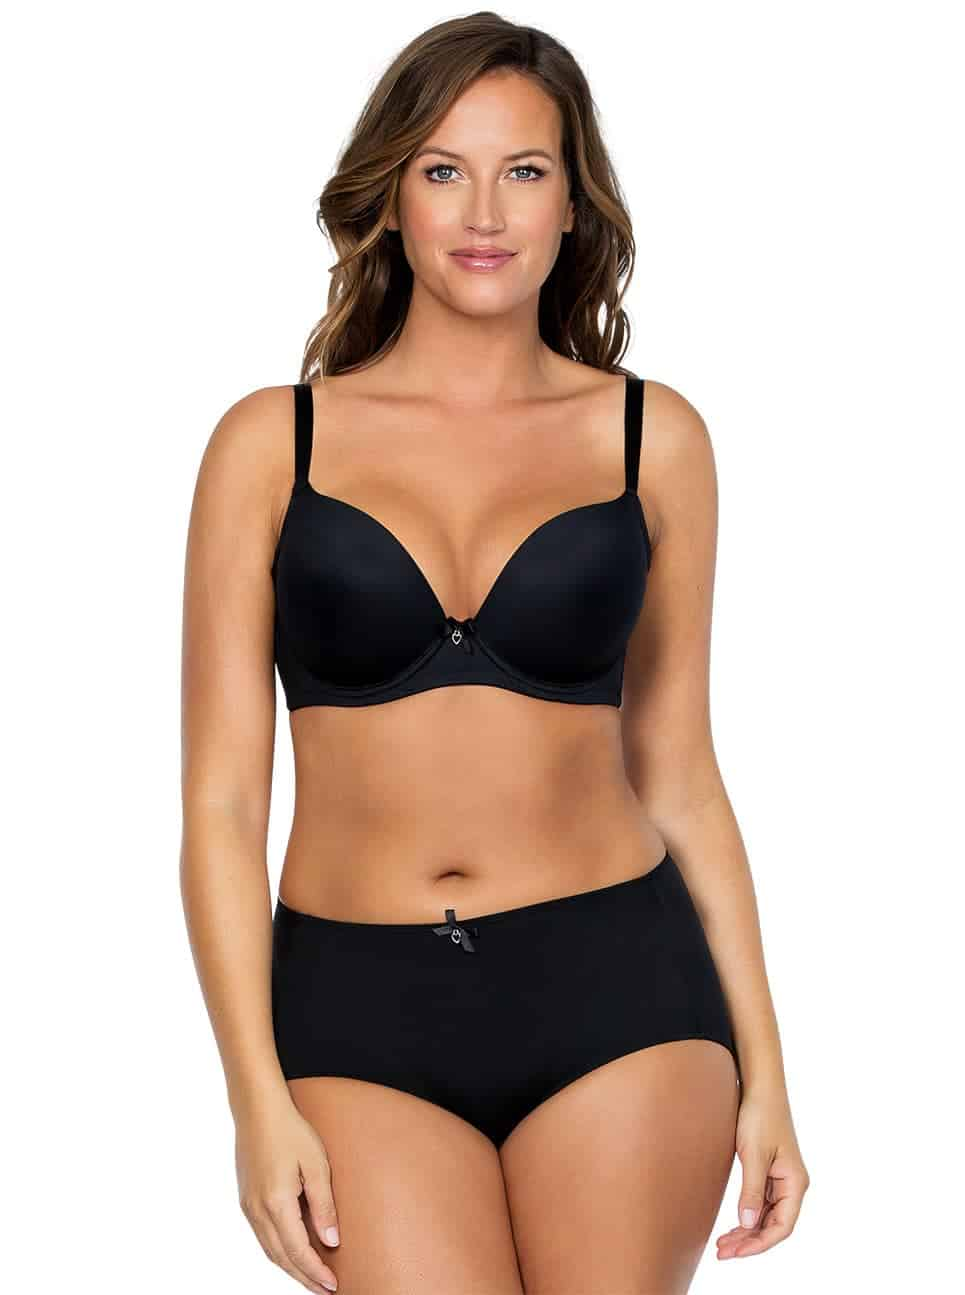 Jeanie PlungeMoldedBra4801 HighCutBrief4803 Black  copy 2 - Jeanie High-Cut Brief - Black - 4803